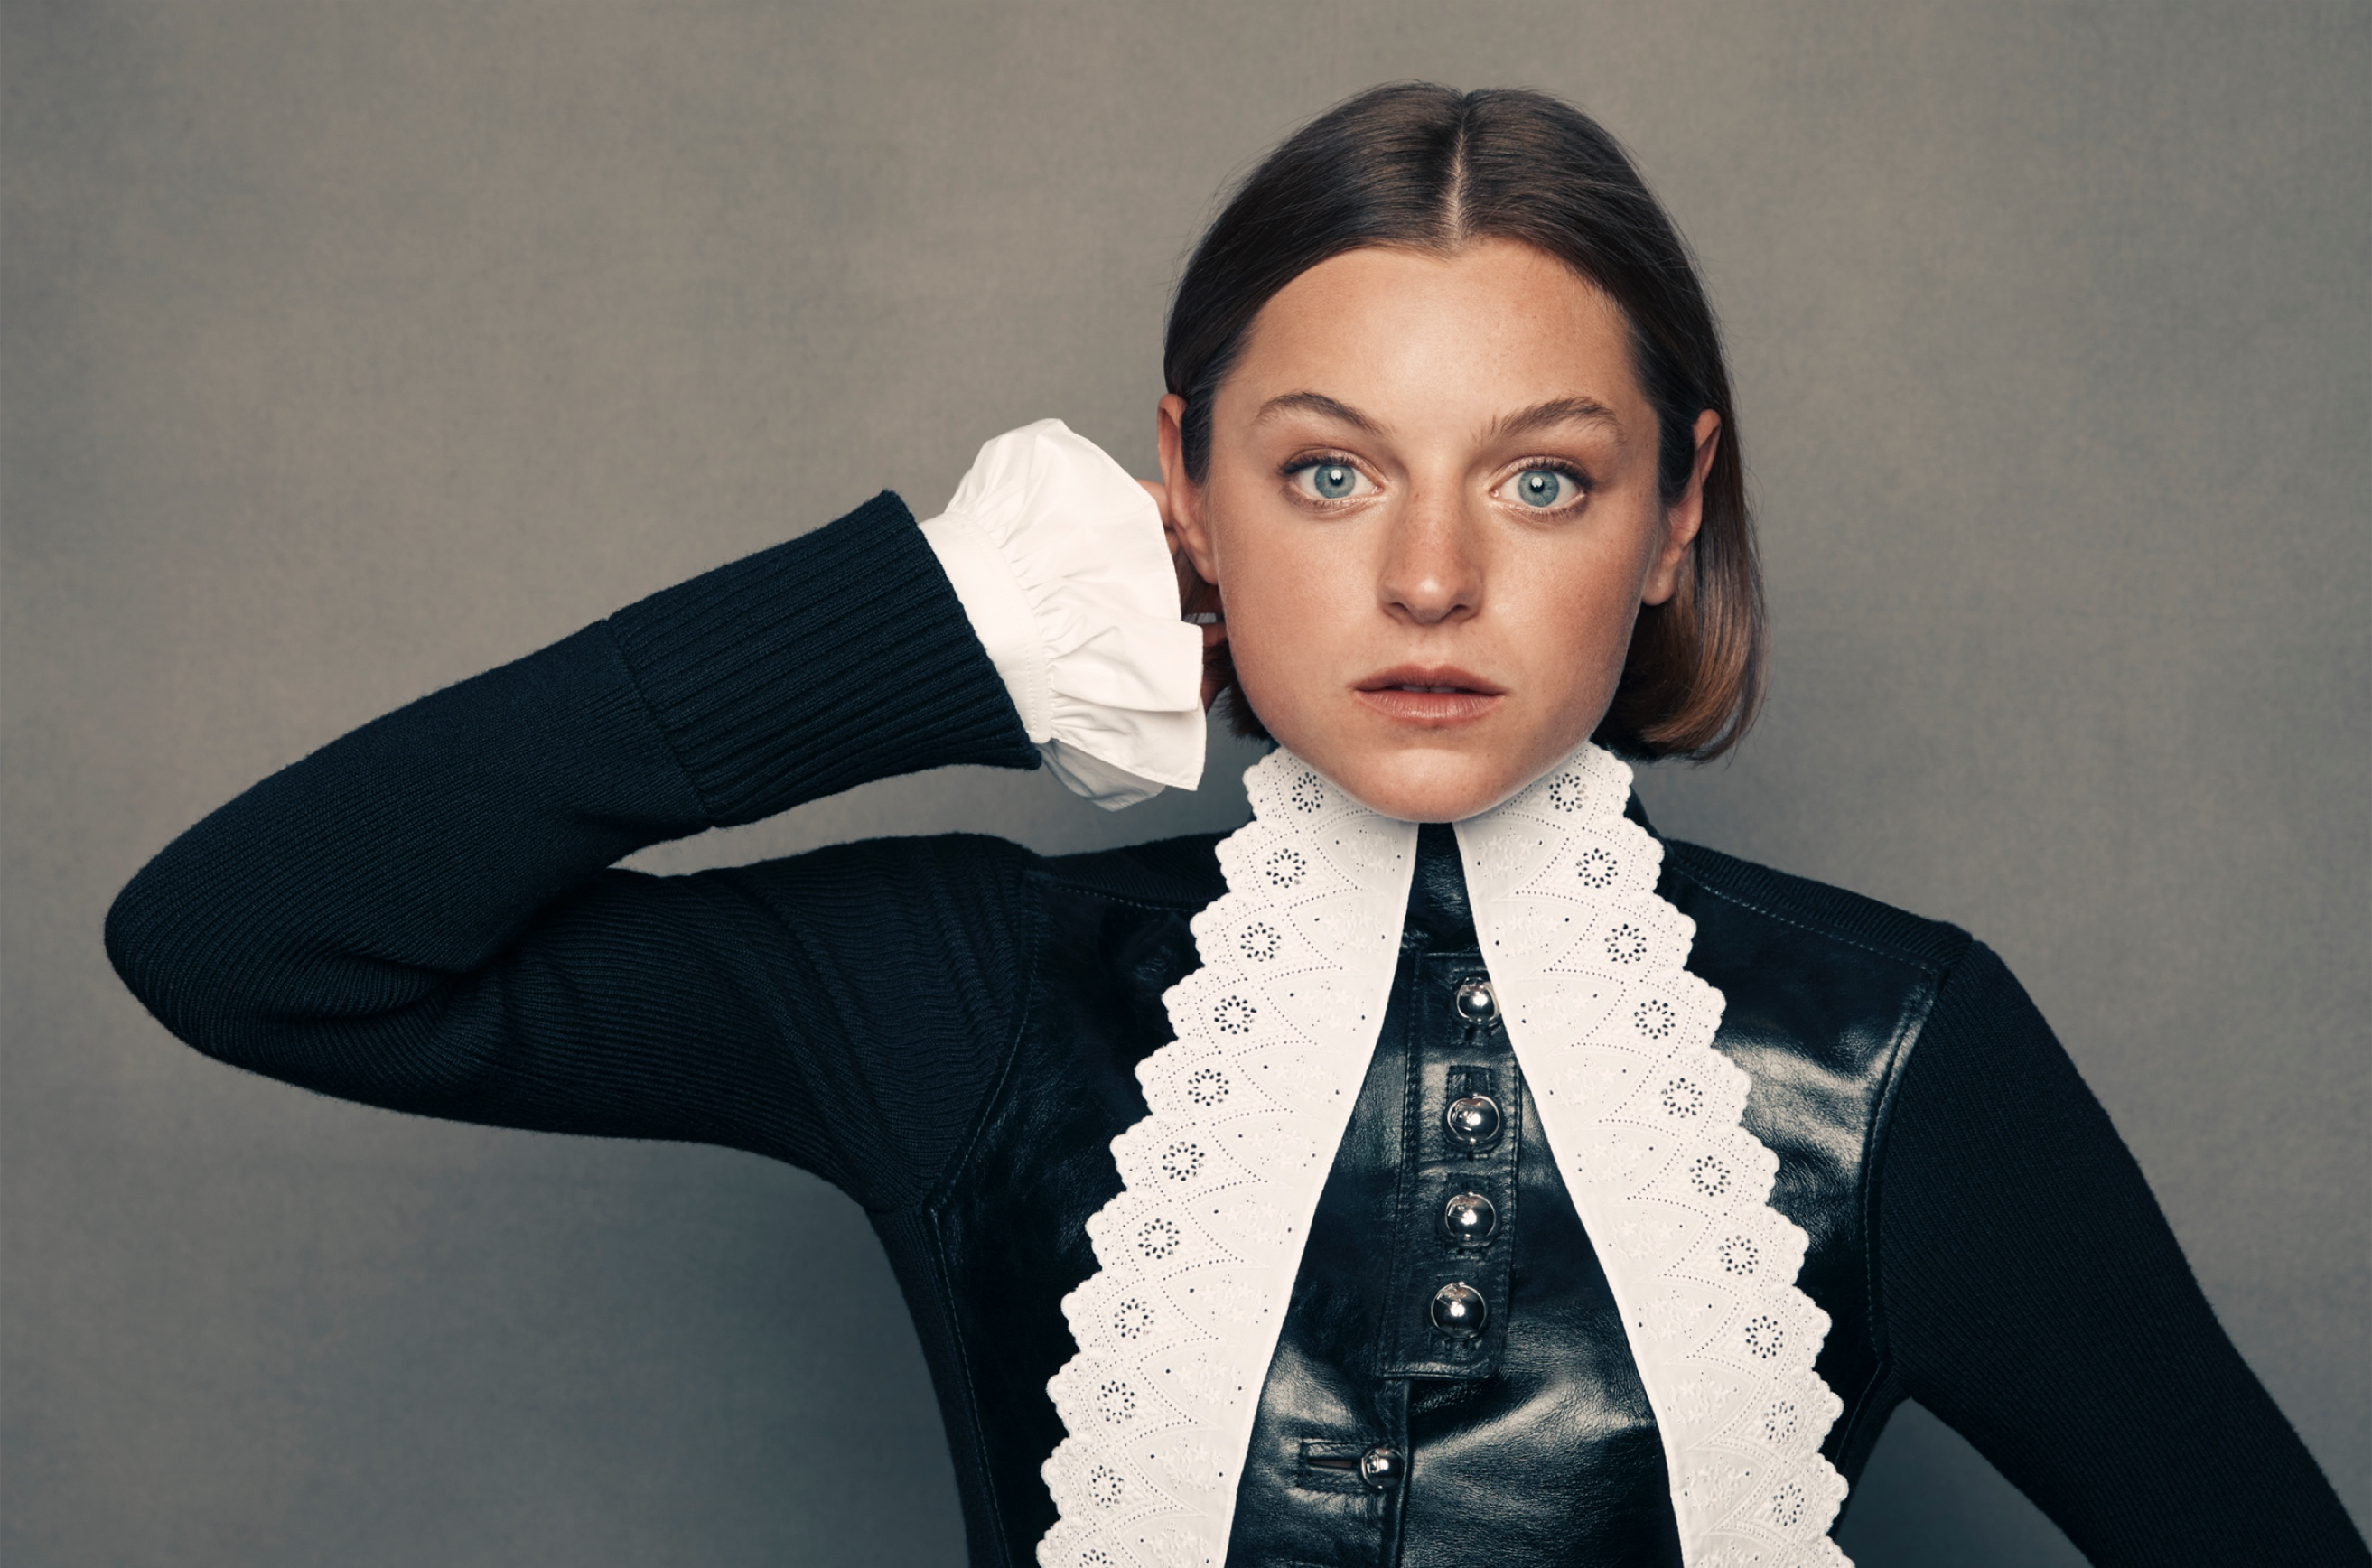 A portrait of Emma Corrin set against a slate-gray background. She wears a striking black leather and lace outfit with long sleeves and a high neckline. She has short cropped brown hair and her blue eyes pierce through the shot.